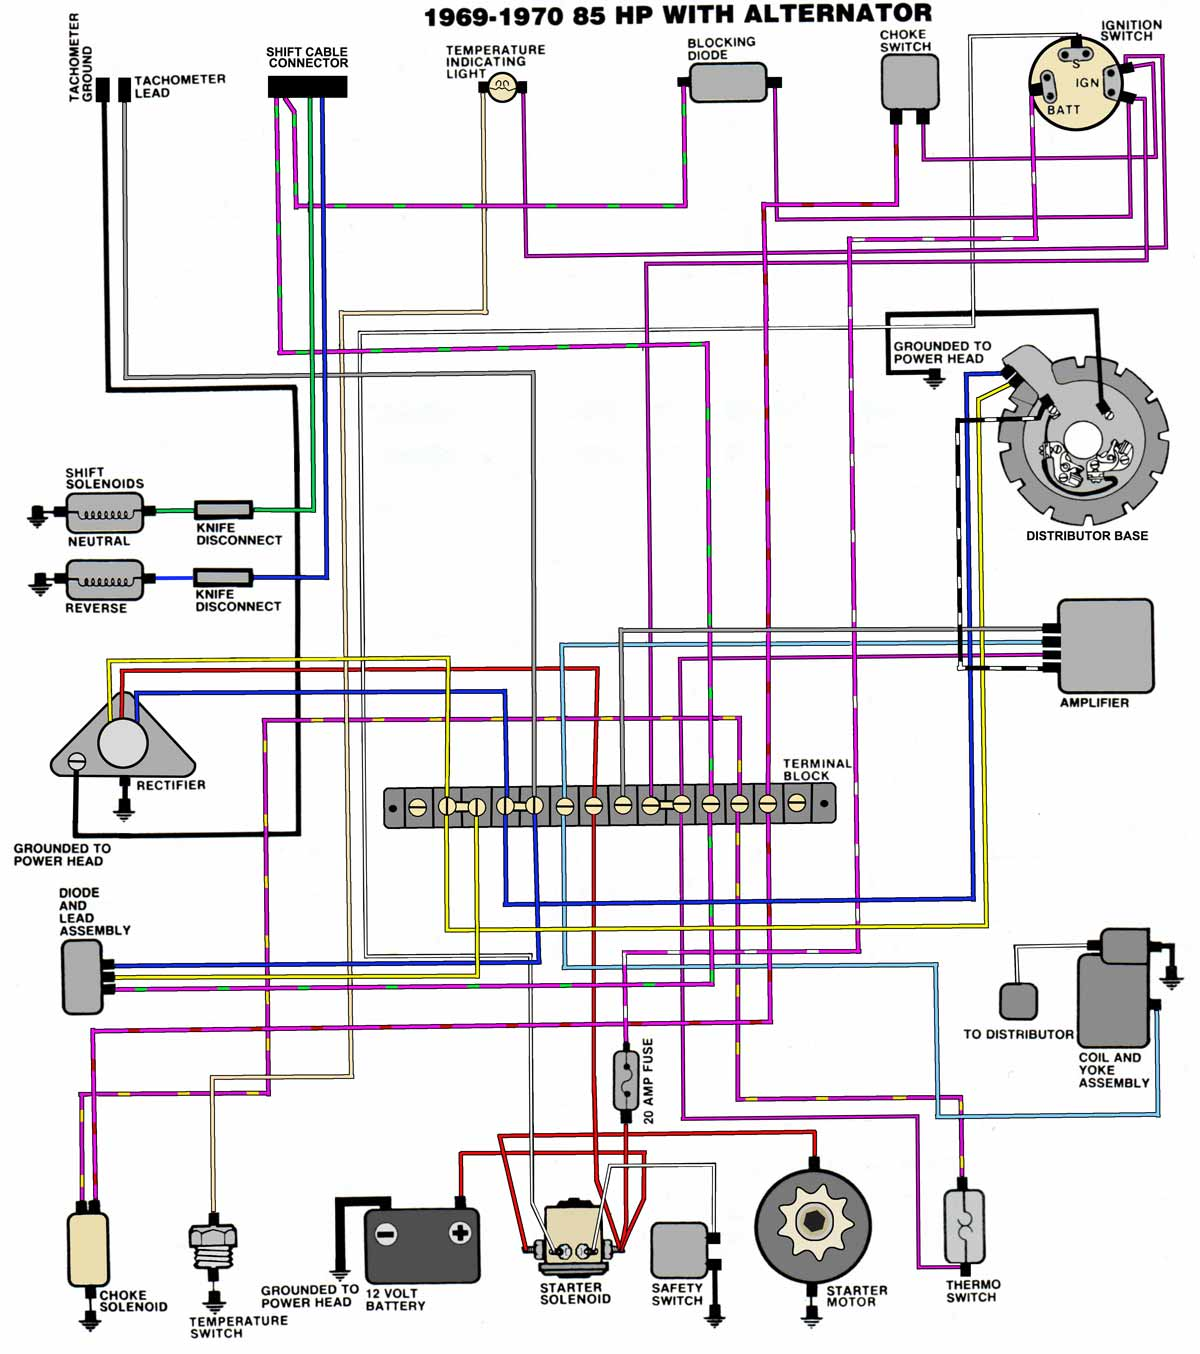 Boat Motor Wiring Data Expertise Radio Master Tech Marine Outboard Diagram List Of Schematic